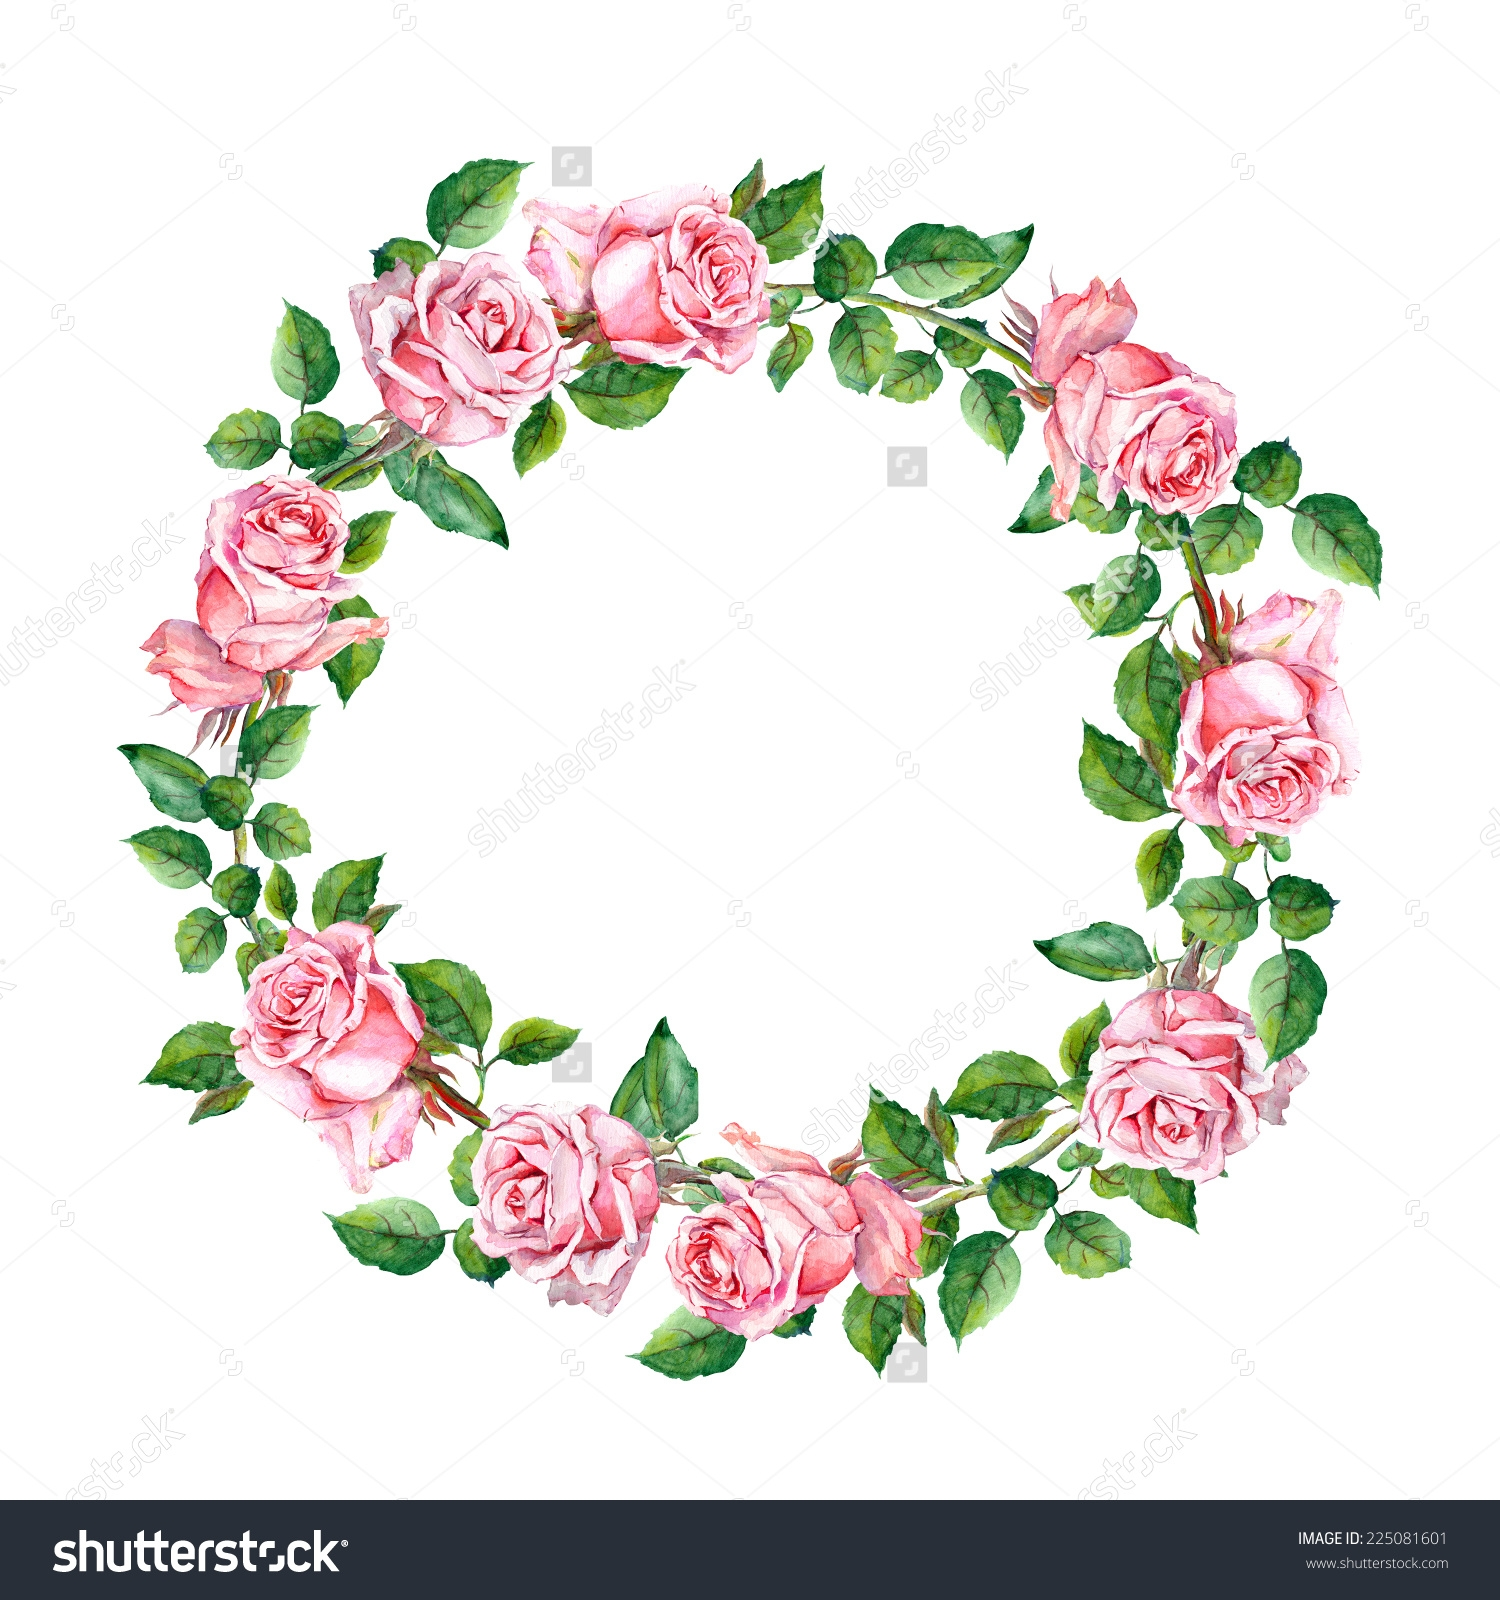 Circle of flowers clip art.